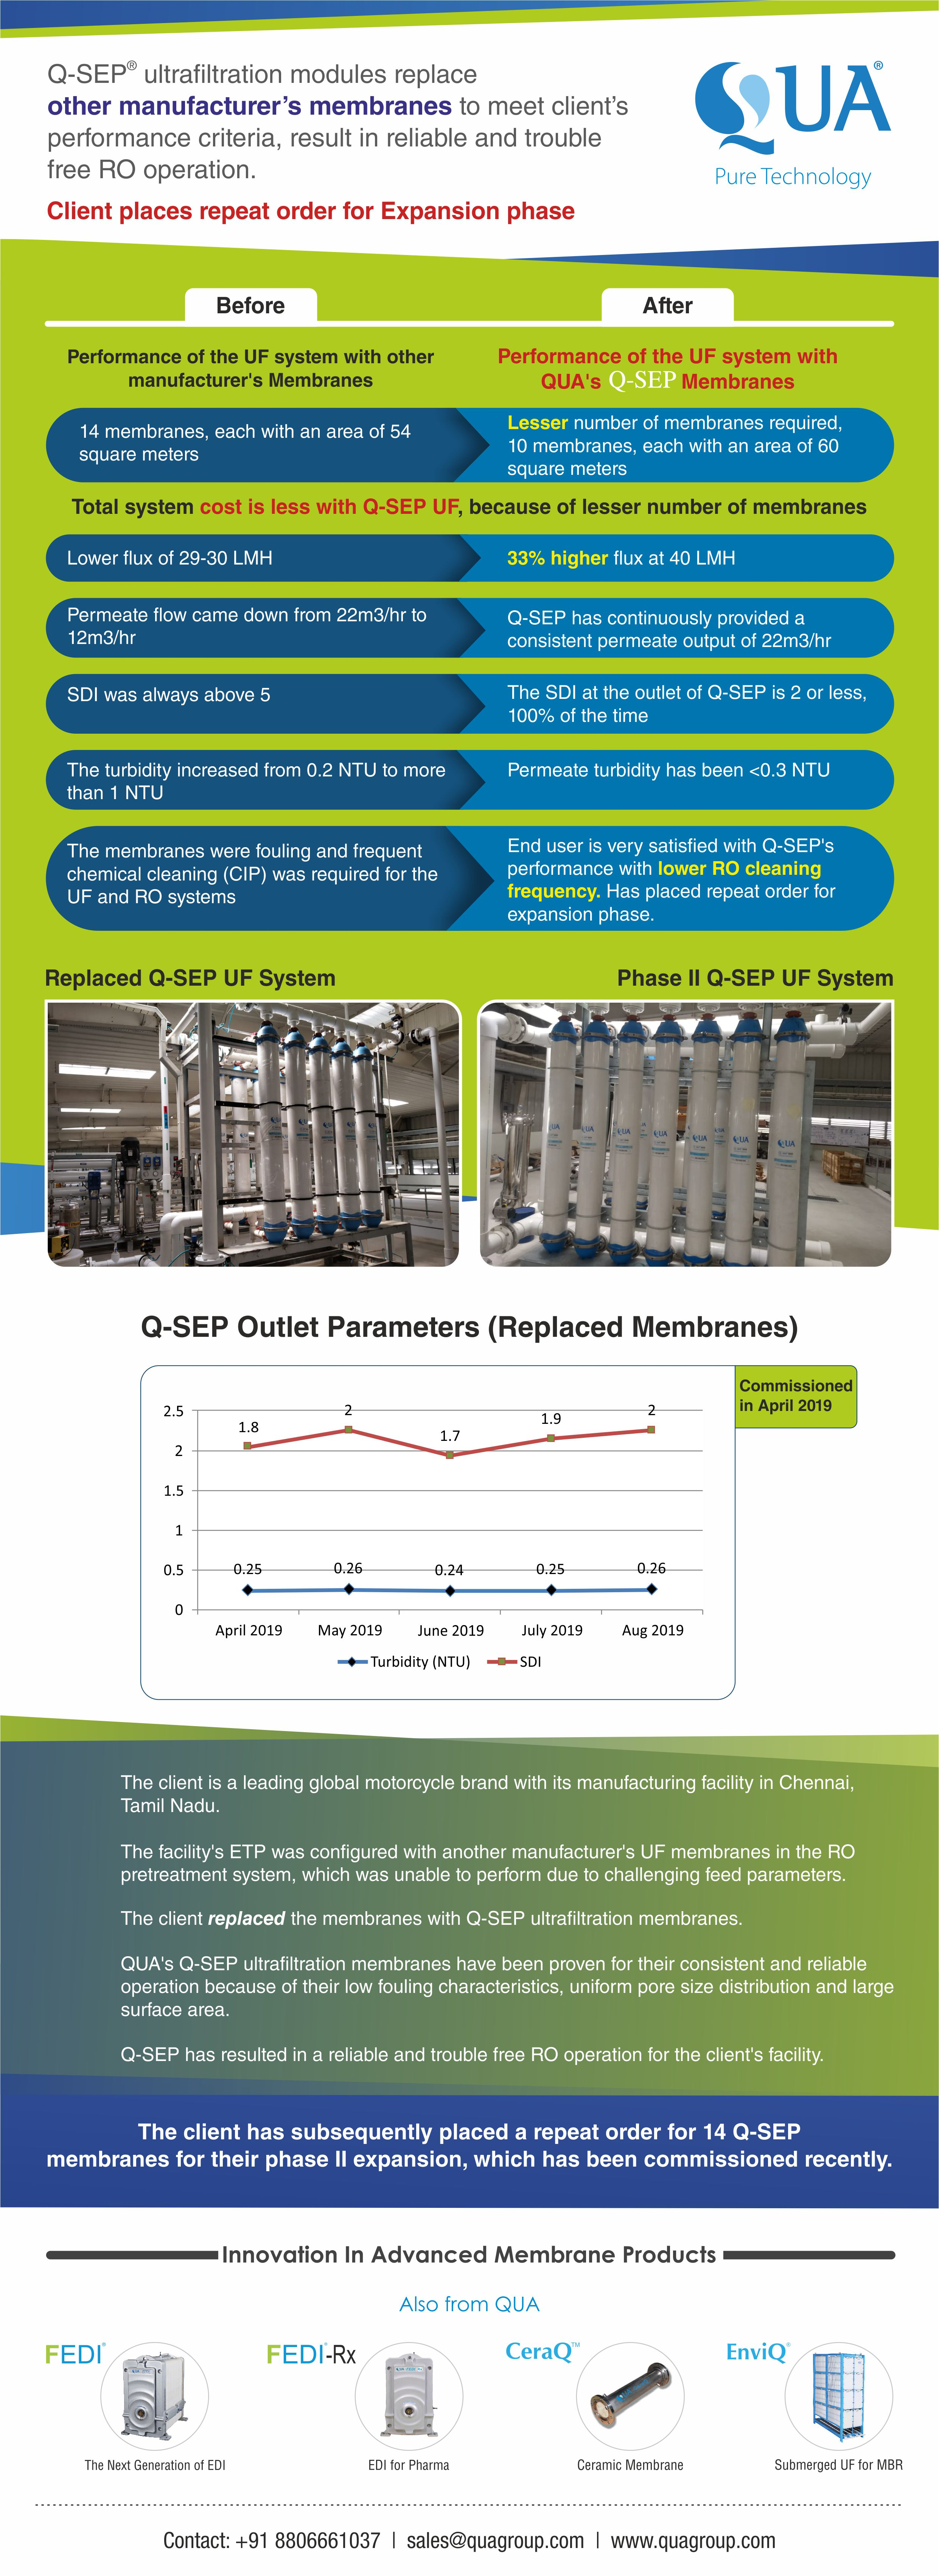 QUA's Q-SEP Ultrafiltration Replaces Other Manufacturer's UF